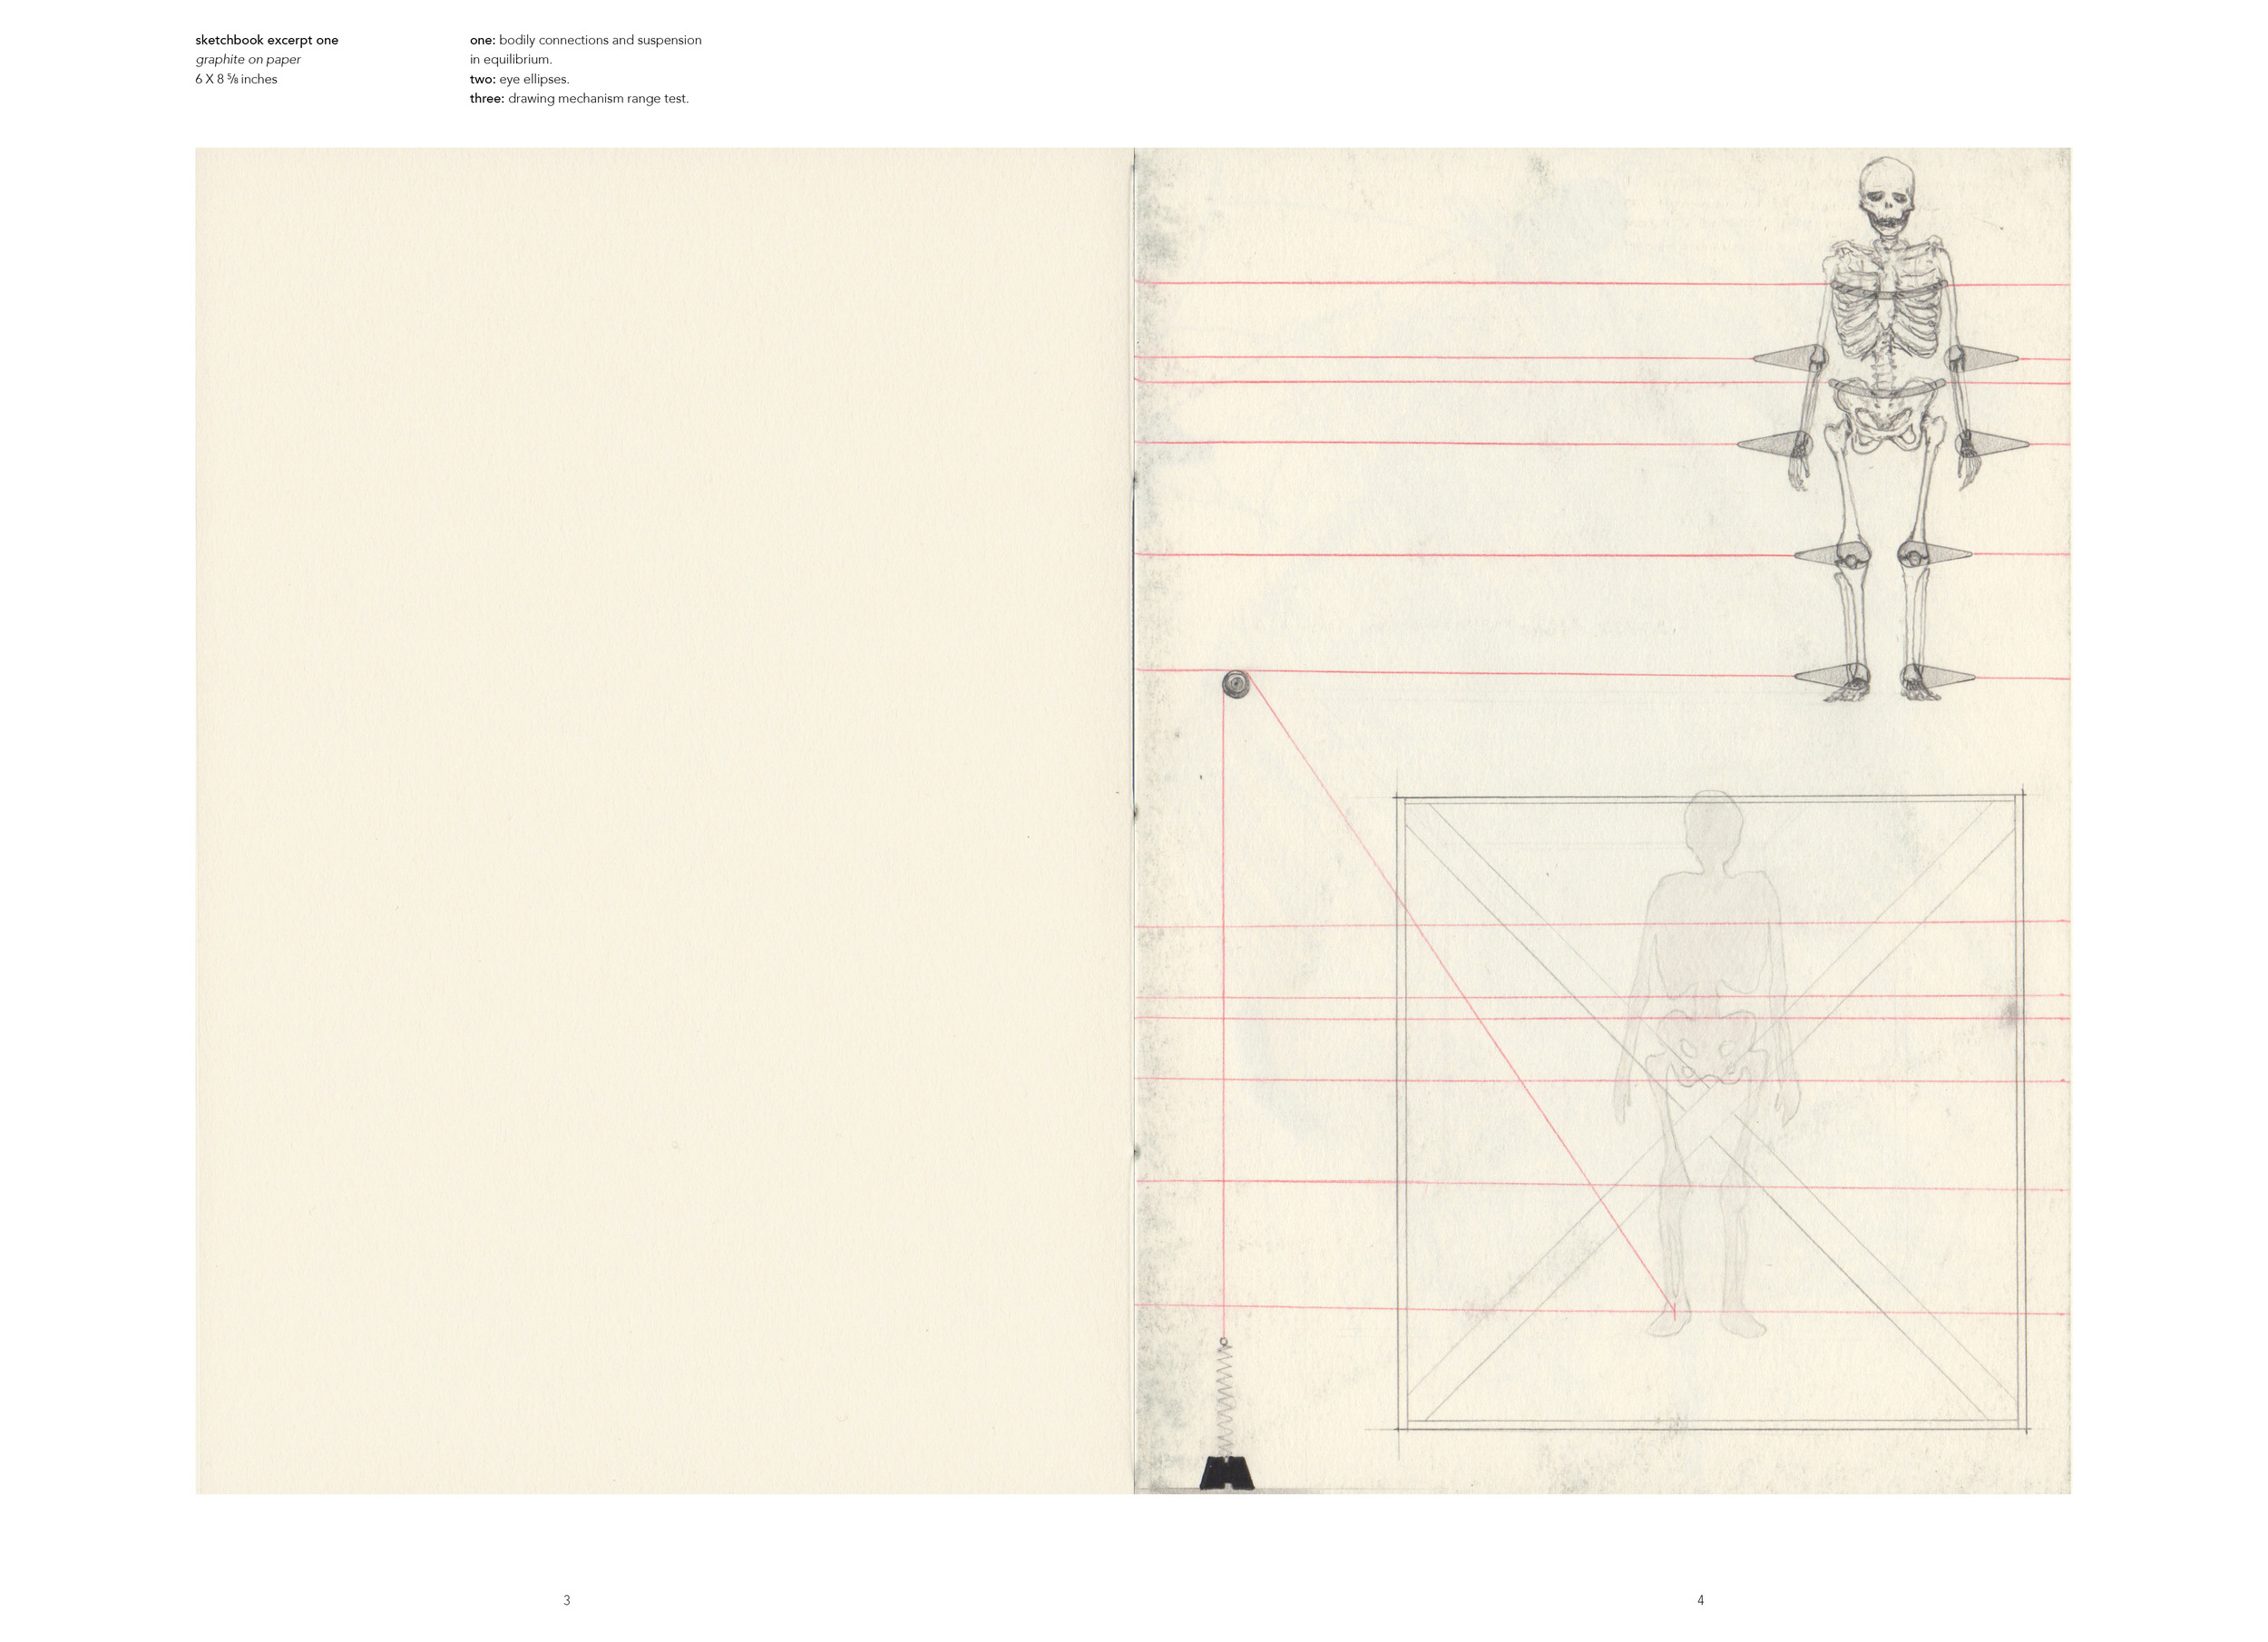 Prosthesis - RISD MArch Thesis - Burgess Voshell8.jpg